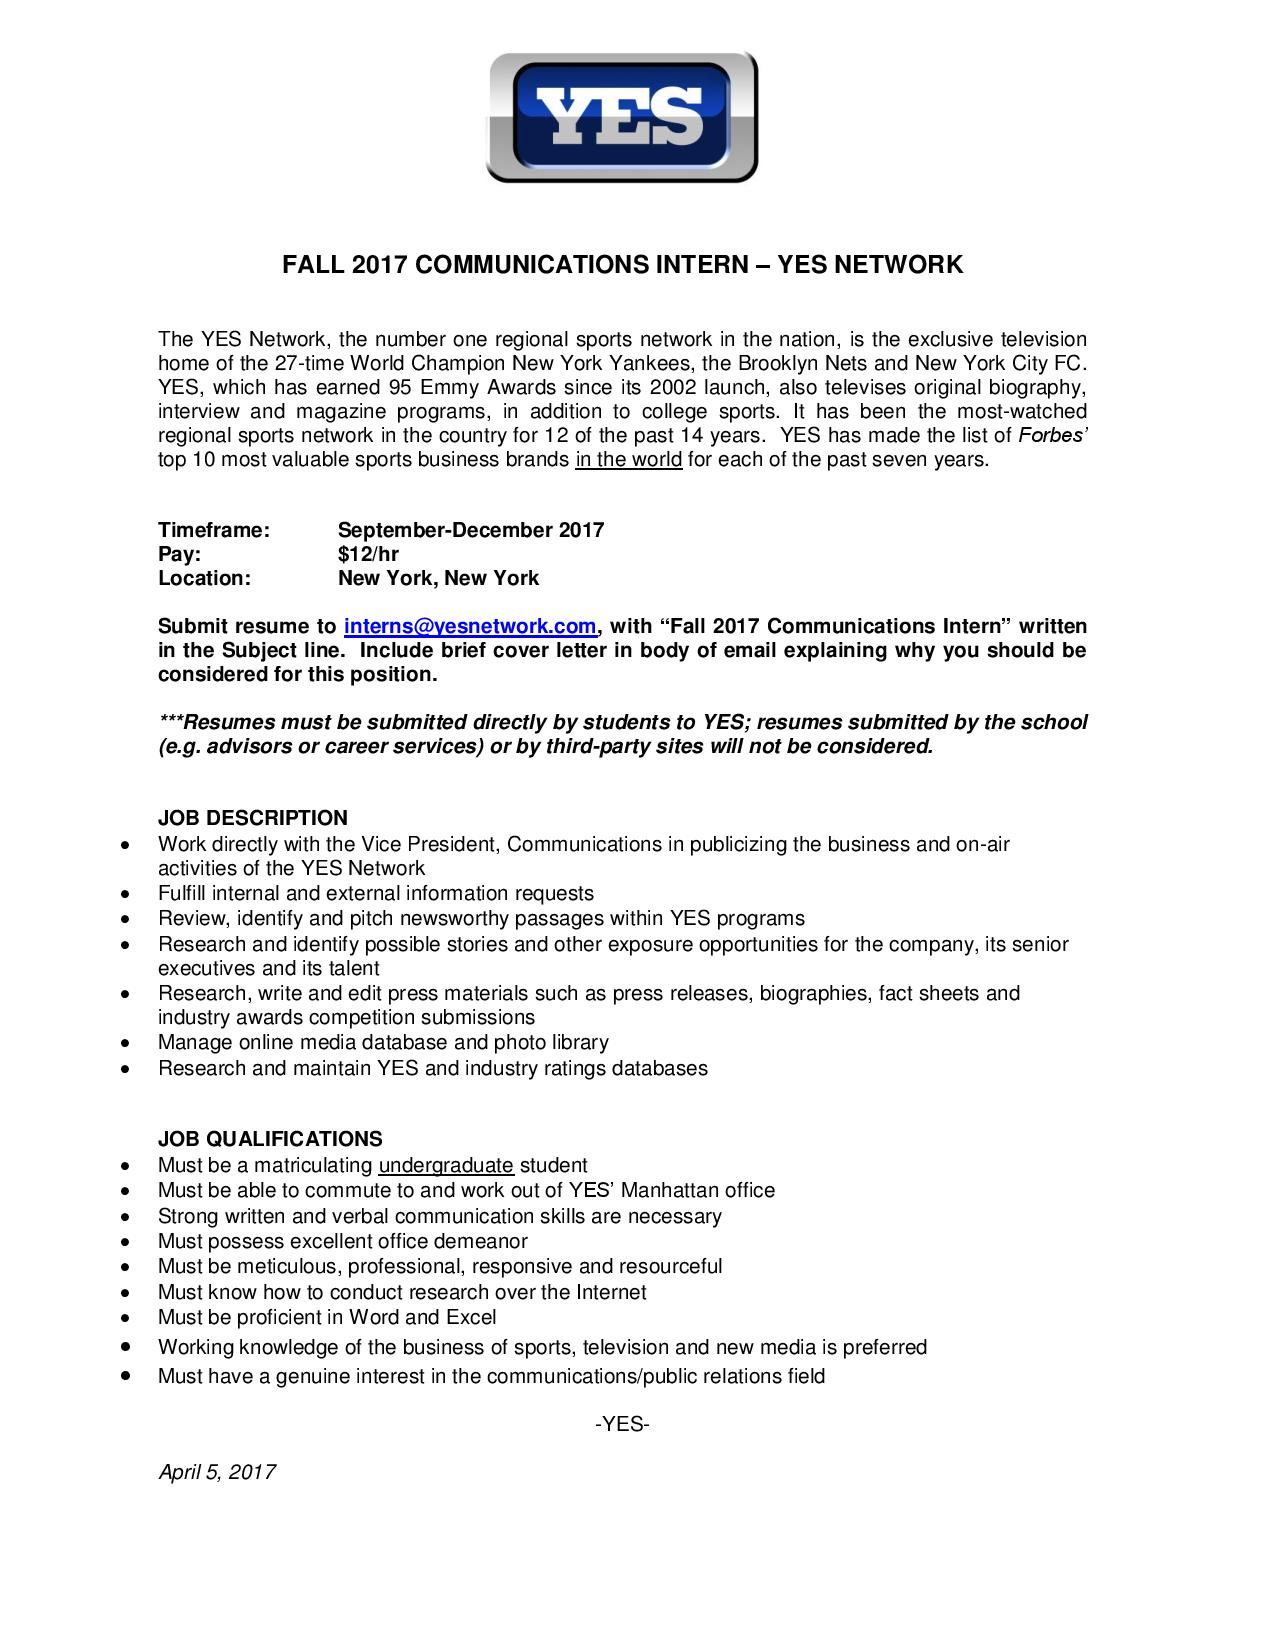 Fall 2017 YES Network Communications Internship – Fordham ...